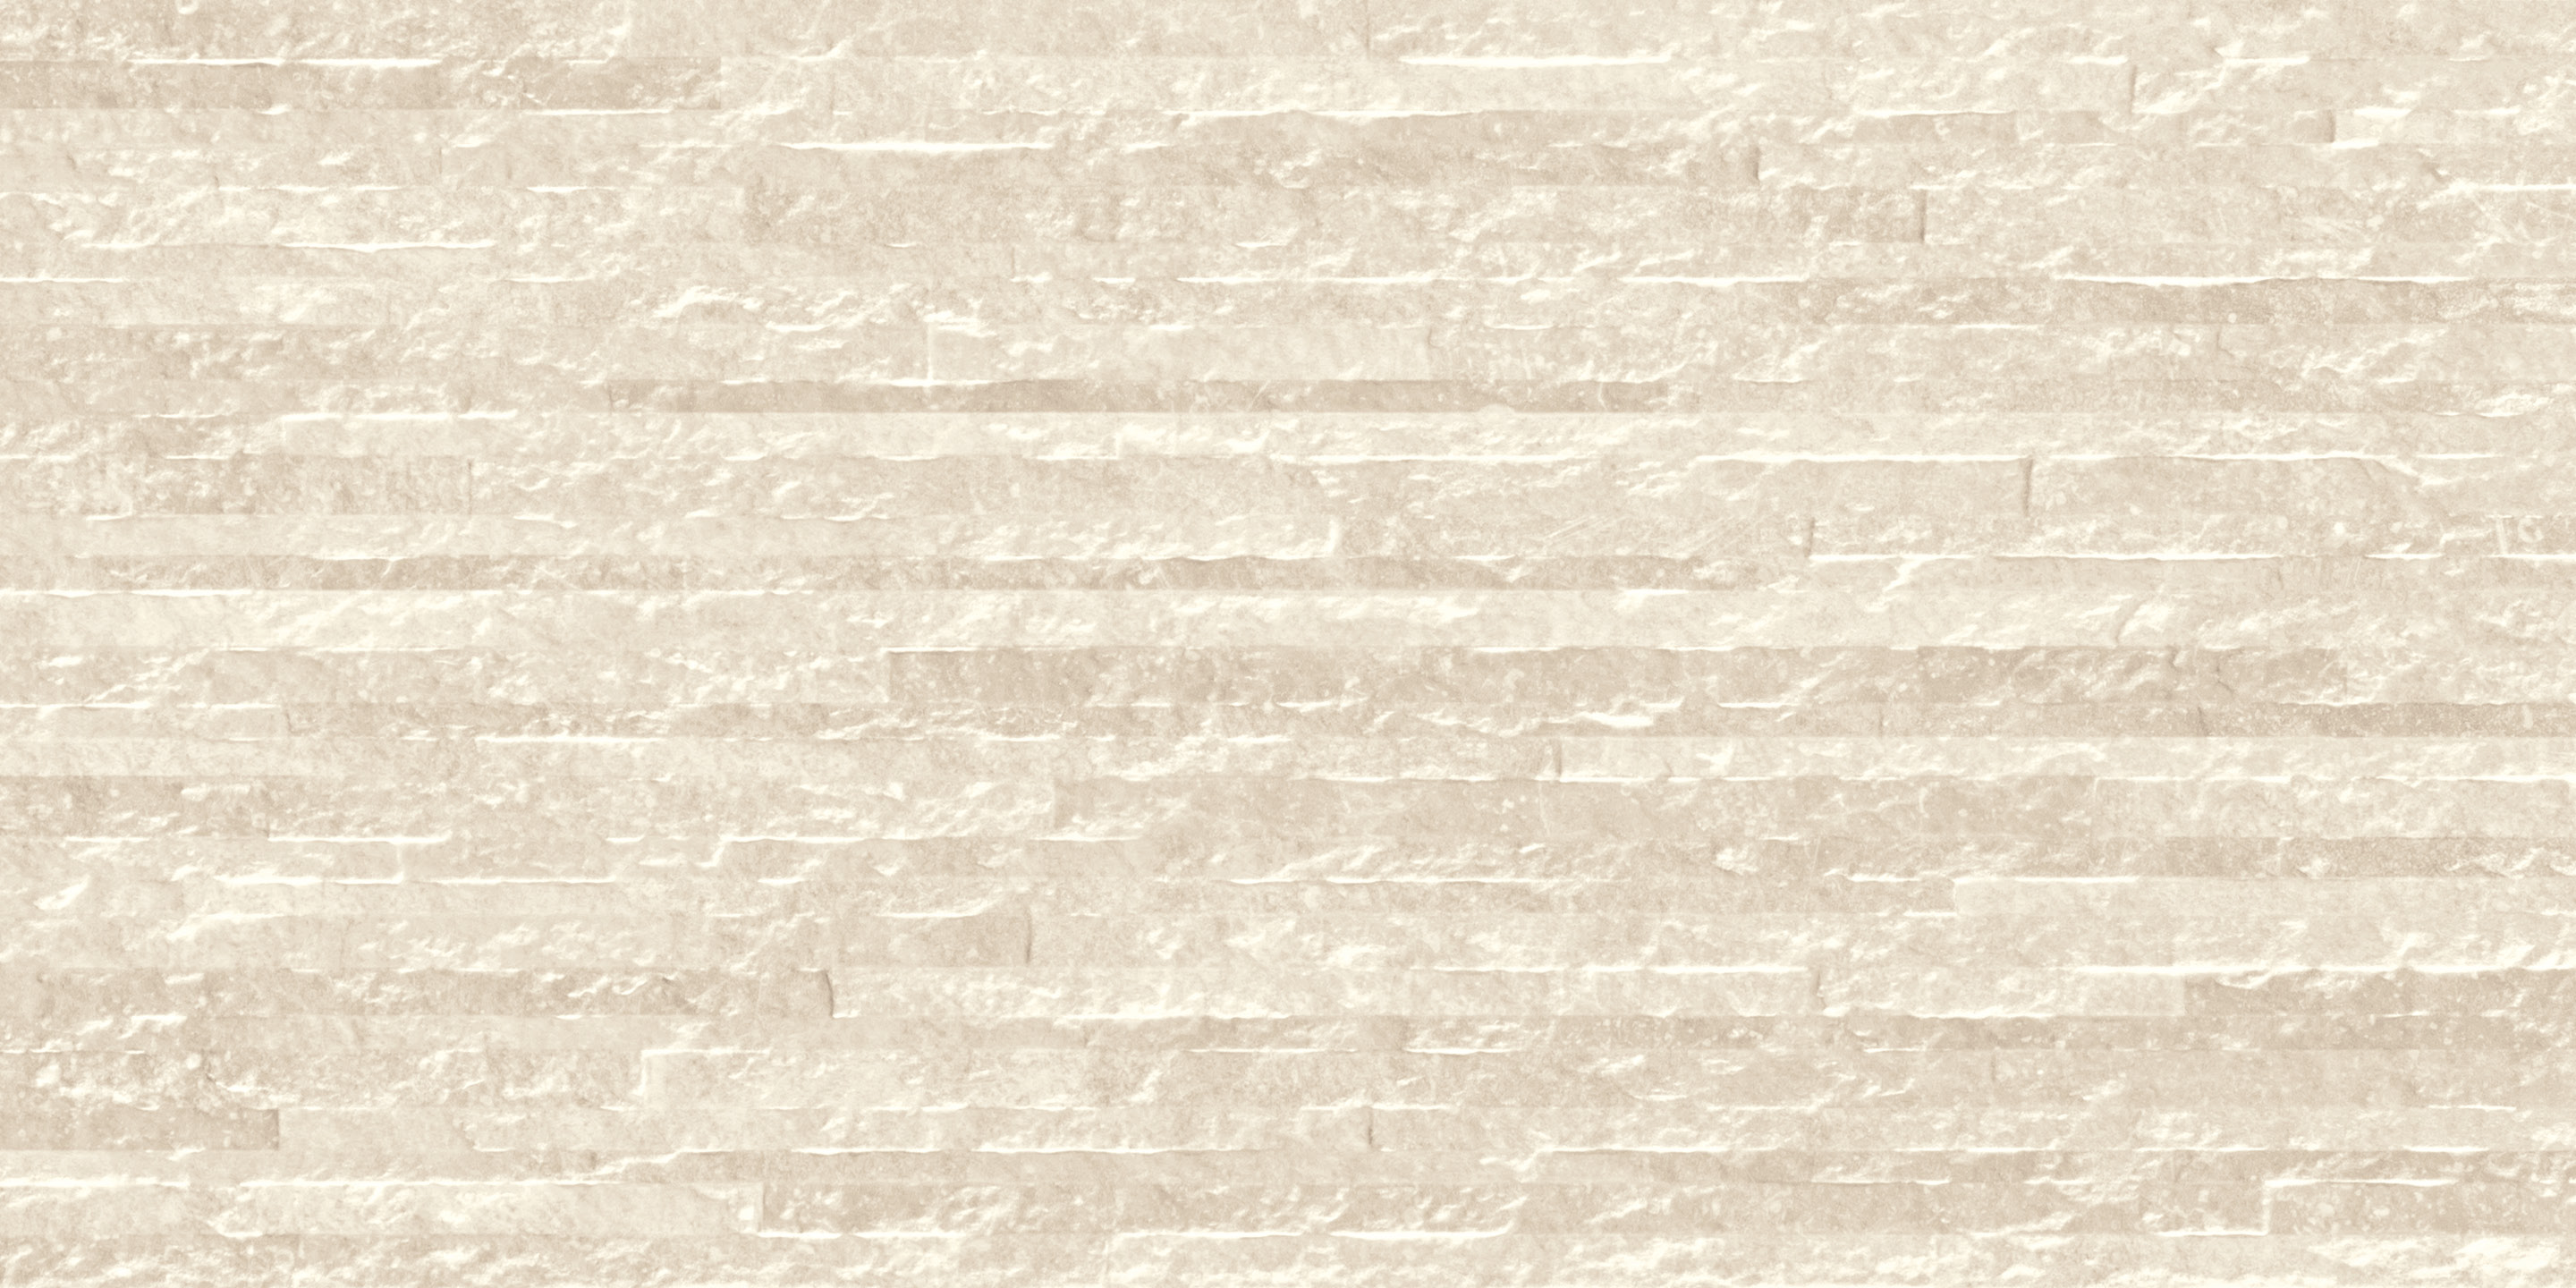 12 x 24 Marwari Moon relief deco rectified porcelain tile (SPECIAL ORDER)